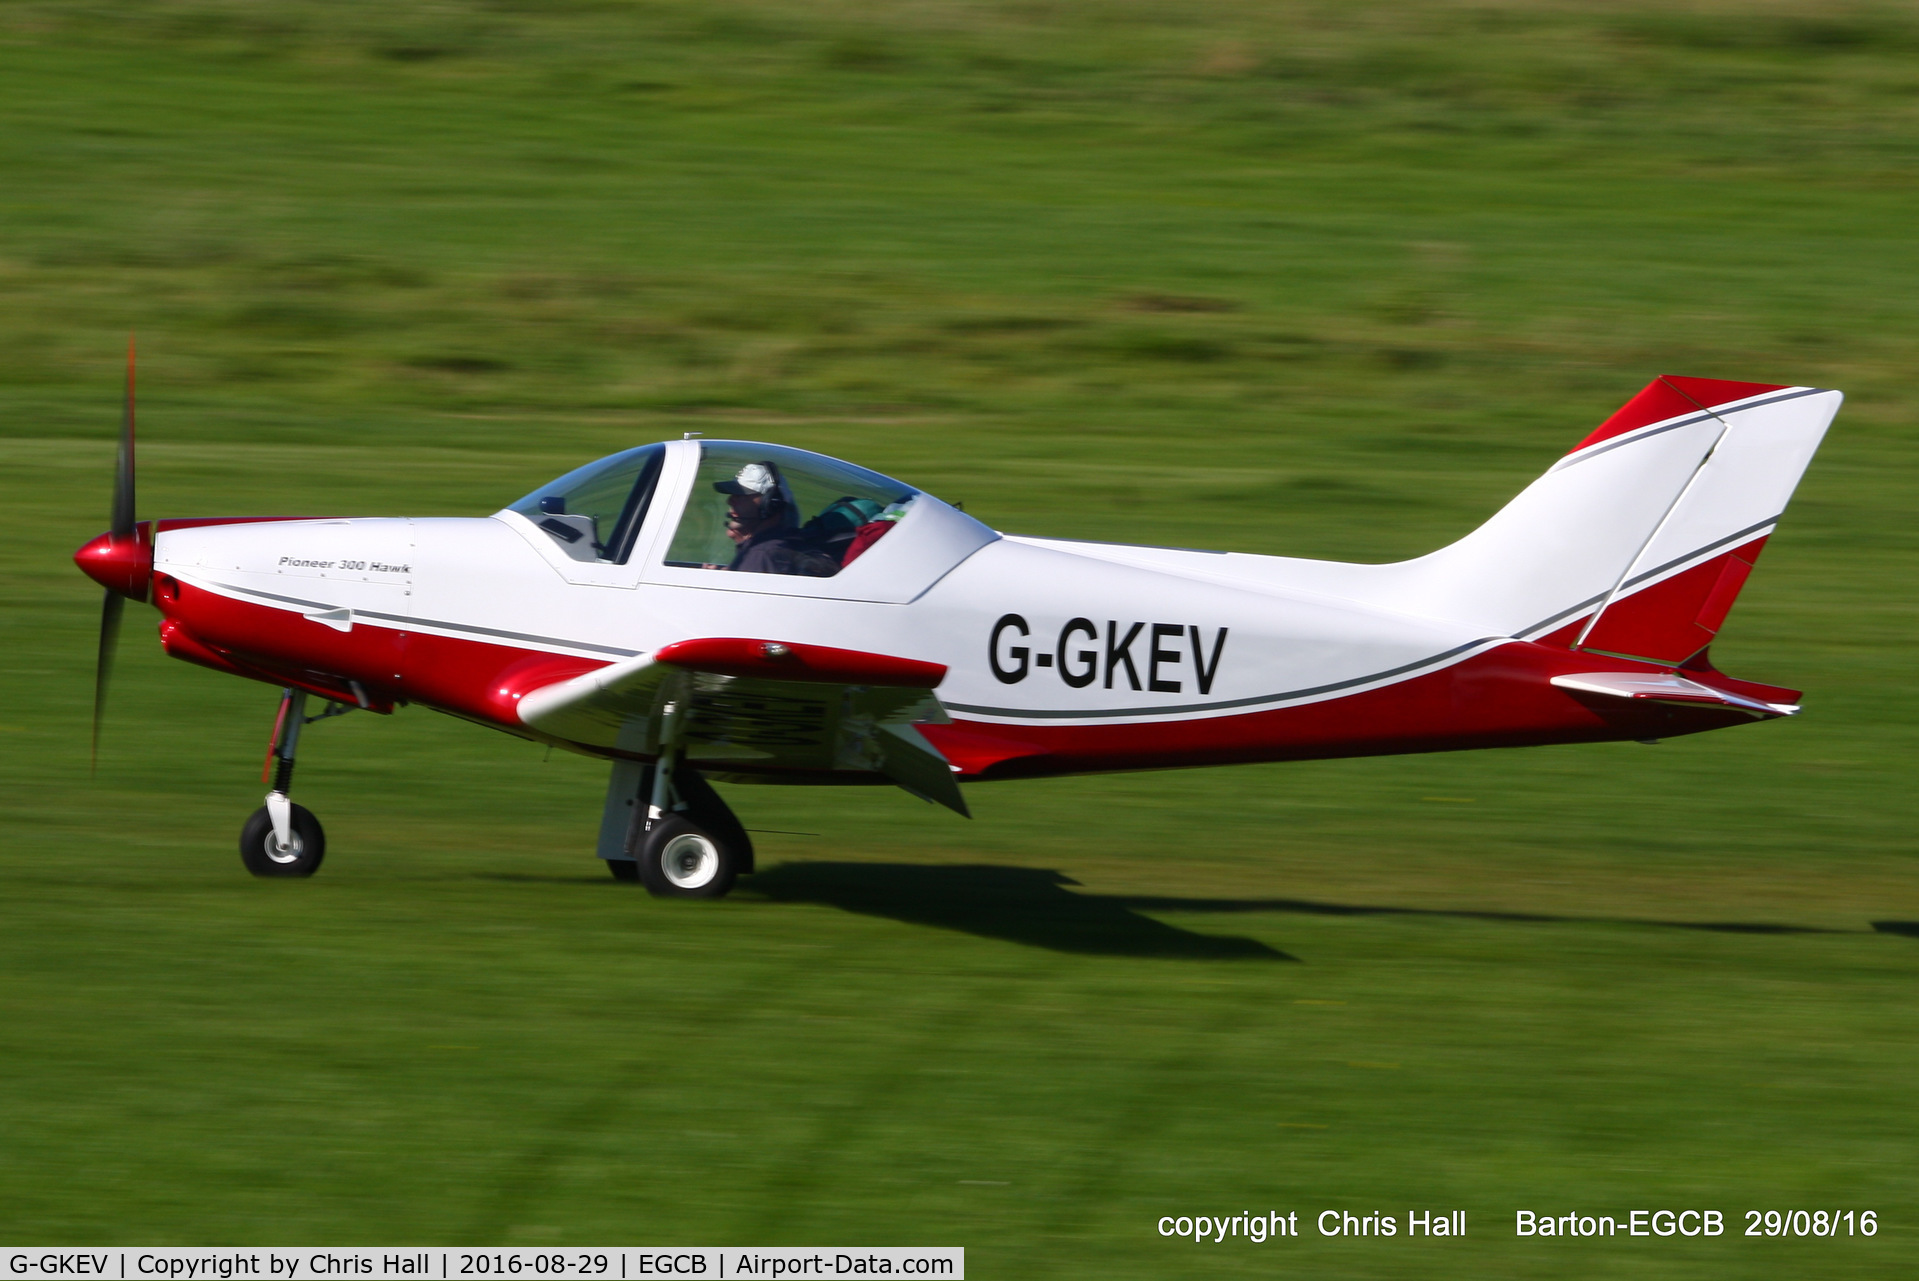 G-GKEV, 2010 Alpi Aviation Pioneer 300 Hawk C/N LAA 330A-14965, at Barton